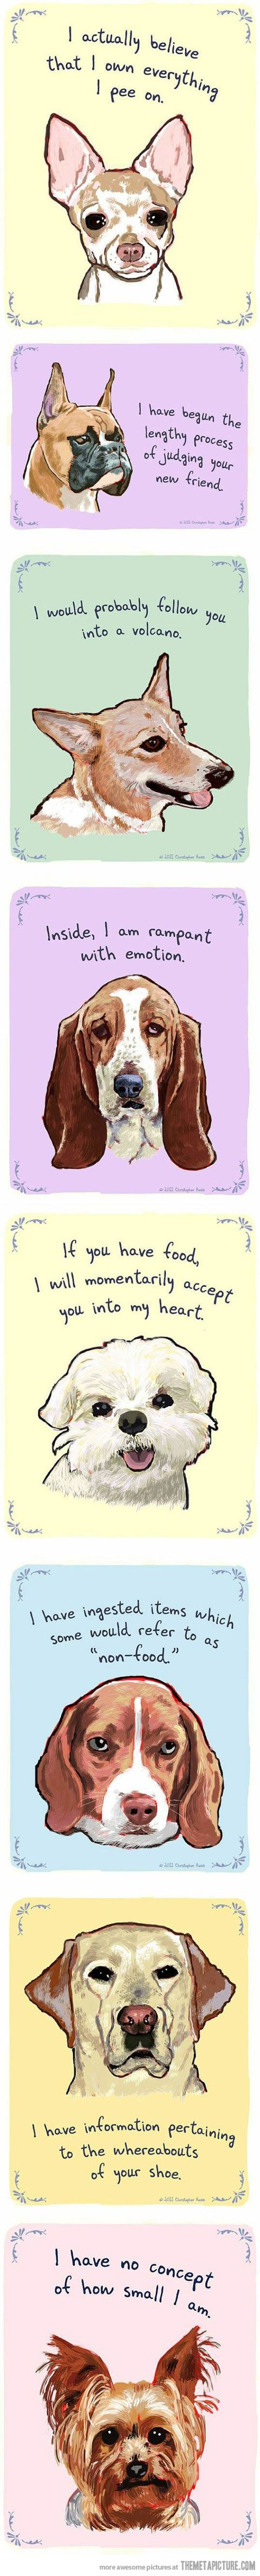 Dog Confessions  These are pretty accurate and funny